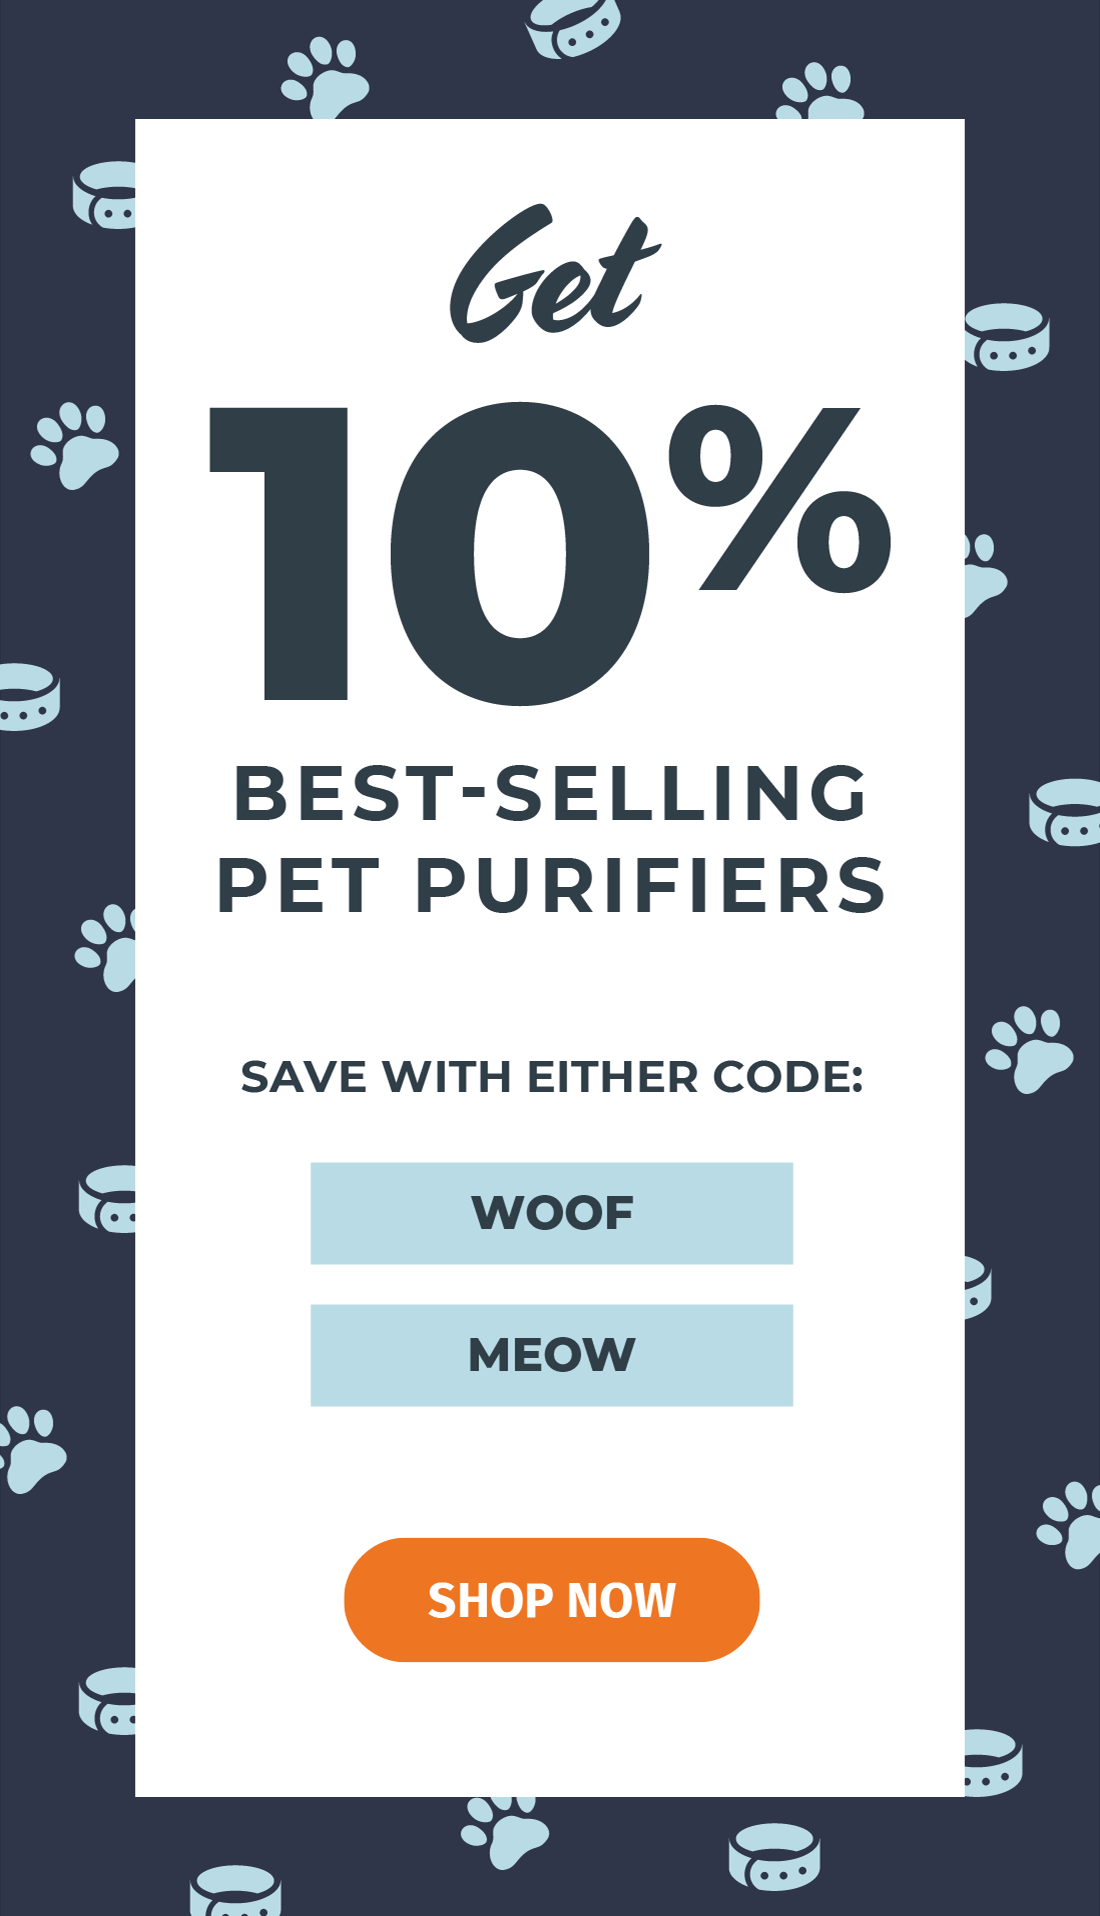 """Get 10% pet purifiers with code """"MEOW"""" or """"WOOF"""""""